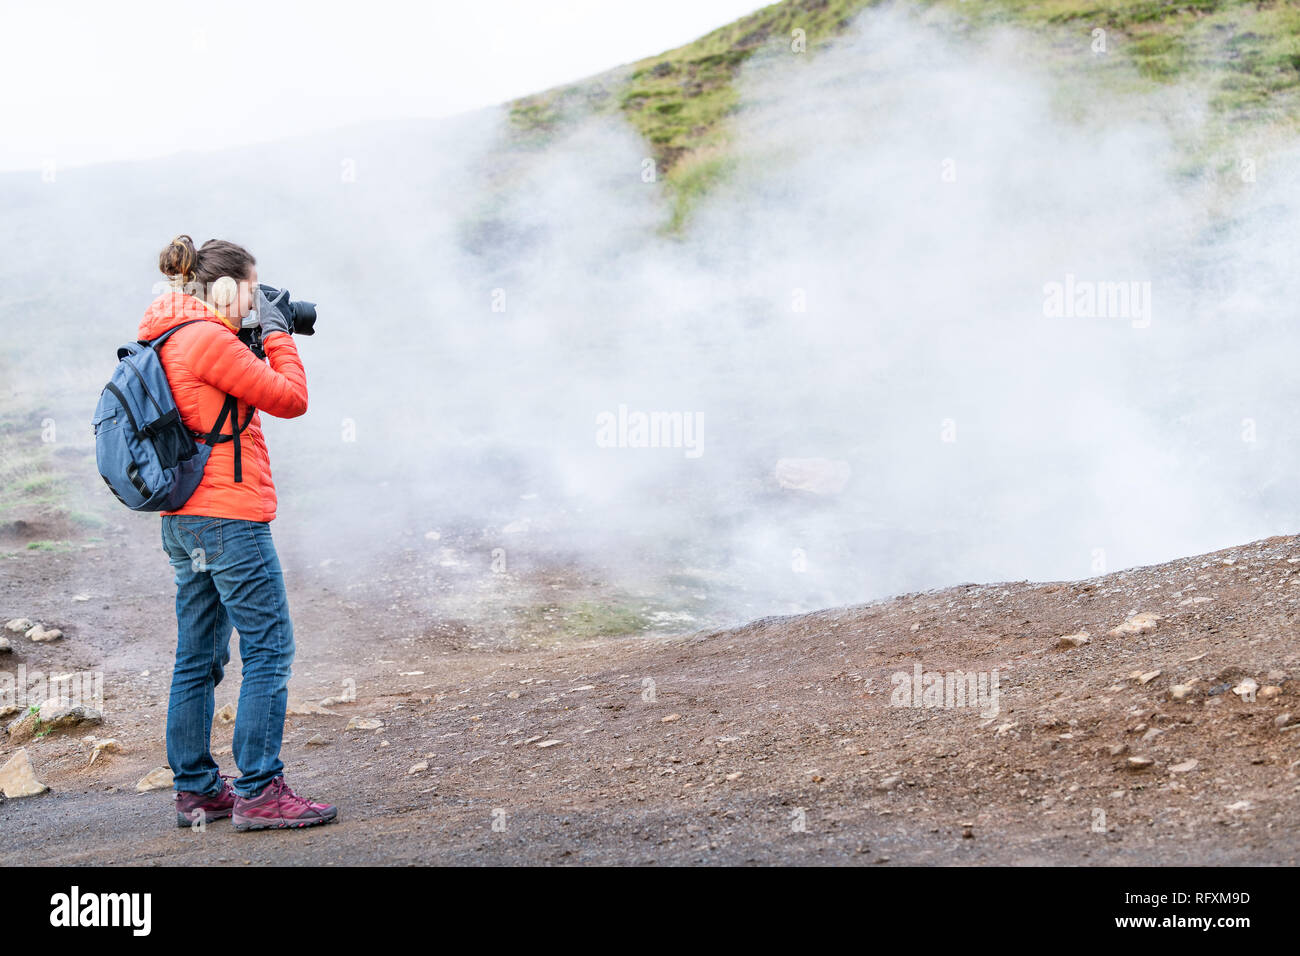 Reykjadalur, Iceland Hot Springs road footpath with steam fumarole vent during autumn day in golden circle with people woman girl taking picture photo - Stock Image